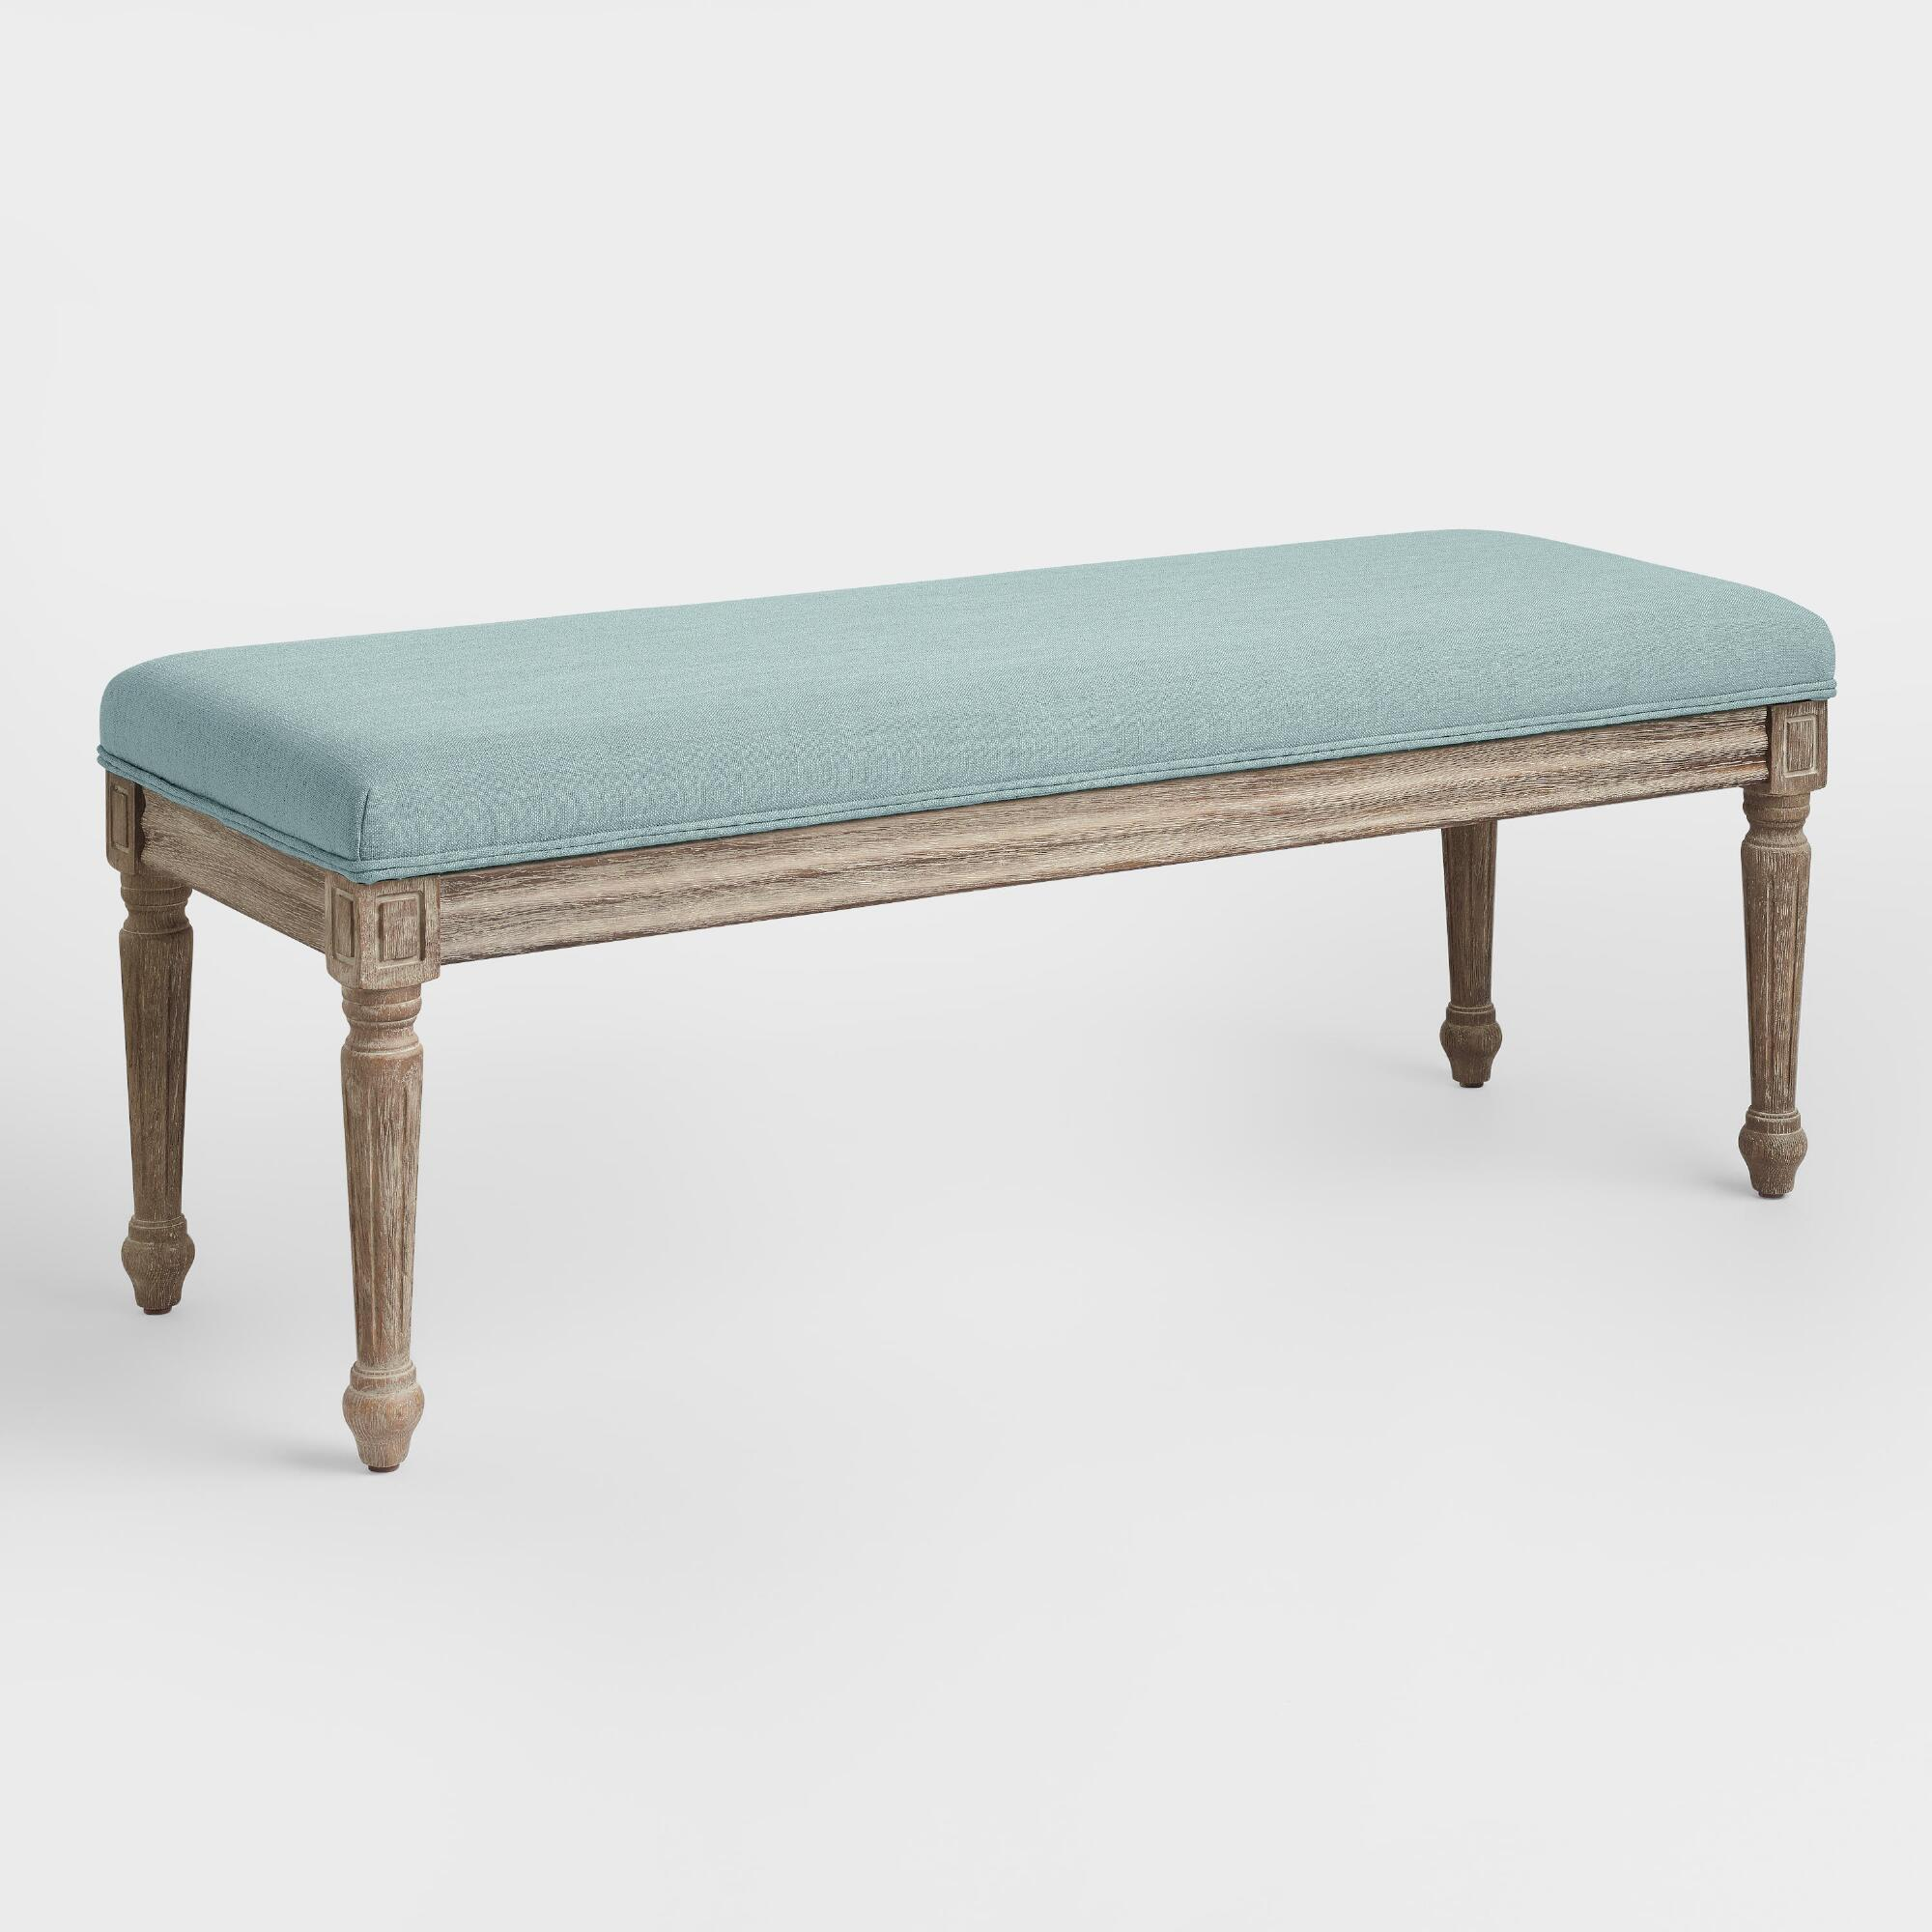 Blue linen paige upholstered dining bench world market for Dining room upholstered bench